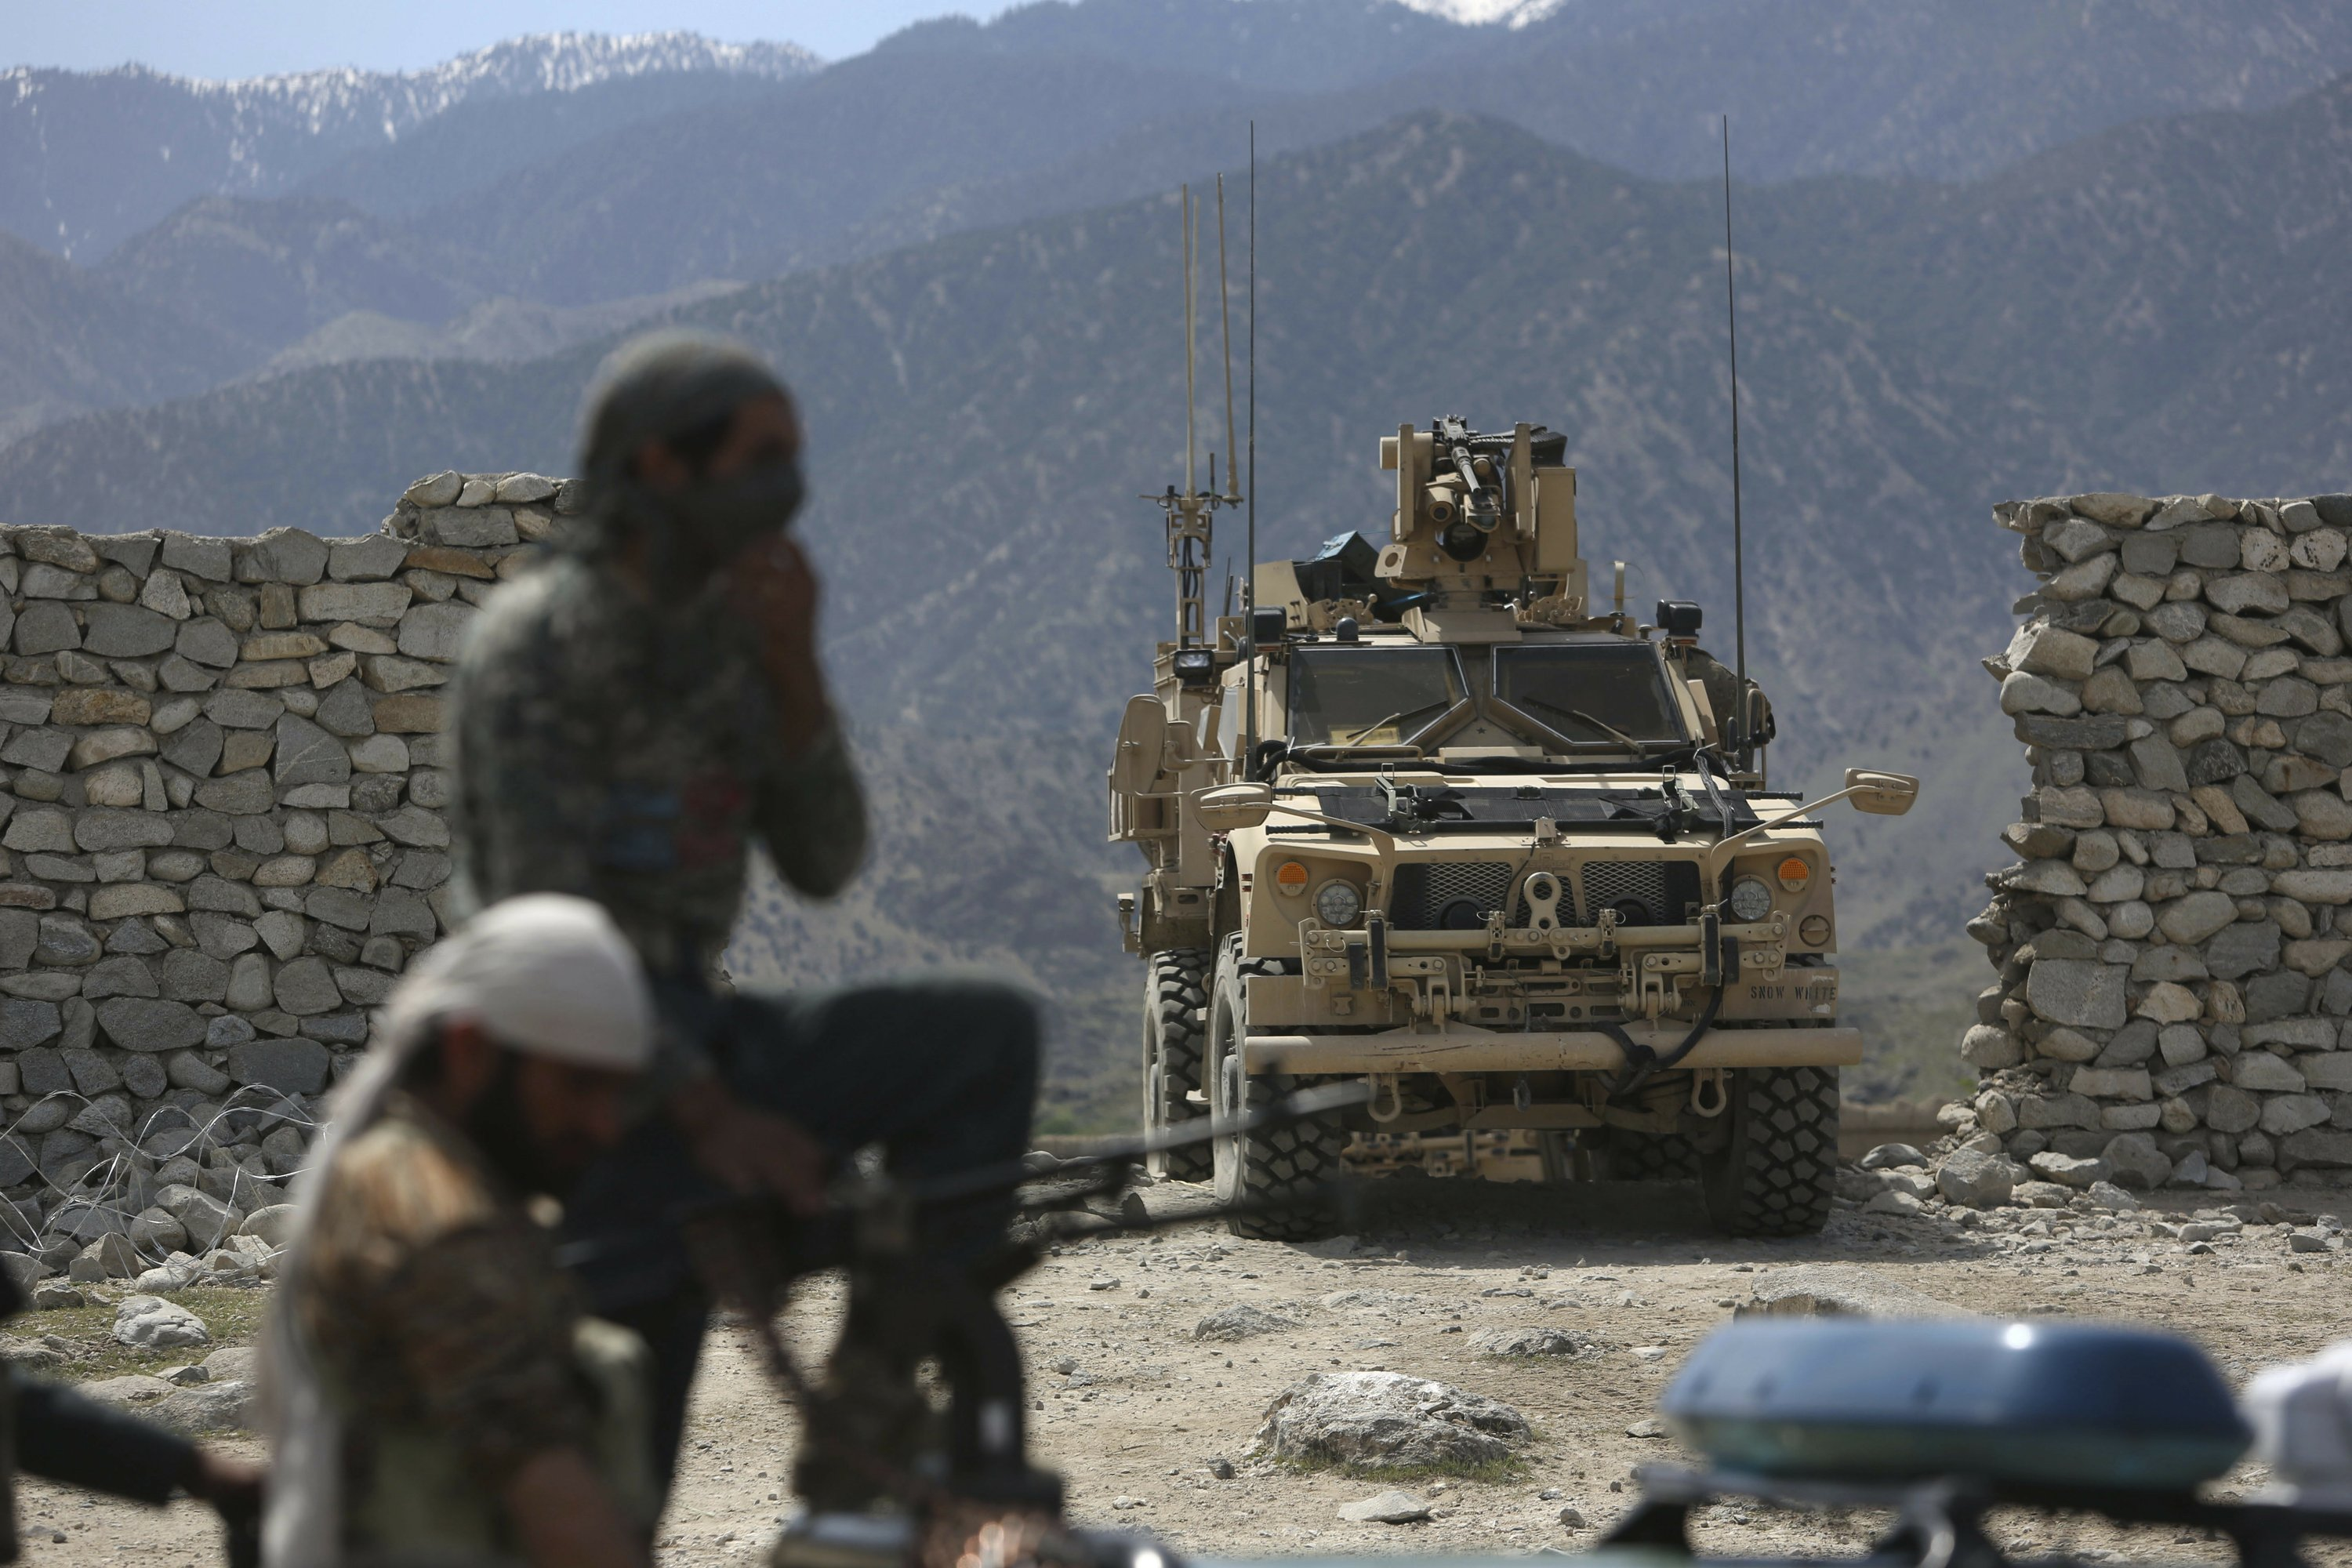 APNewsBreak: About 4,000 more US troops to go to Afghanistan